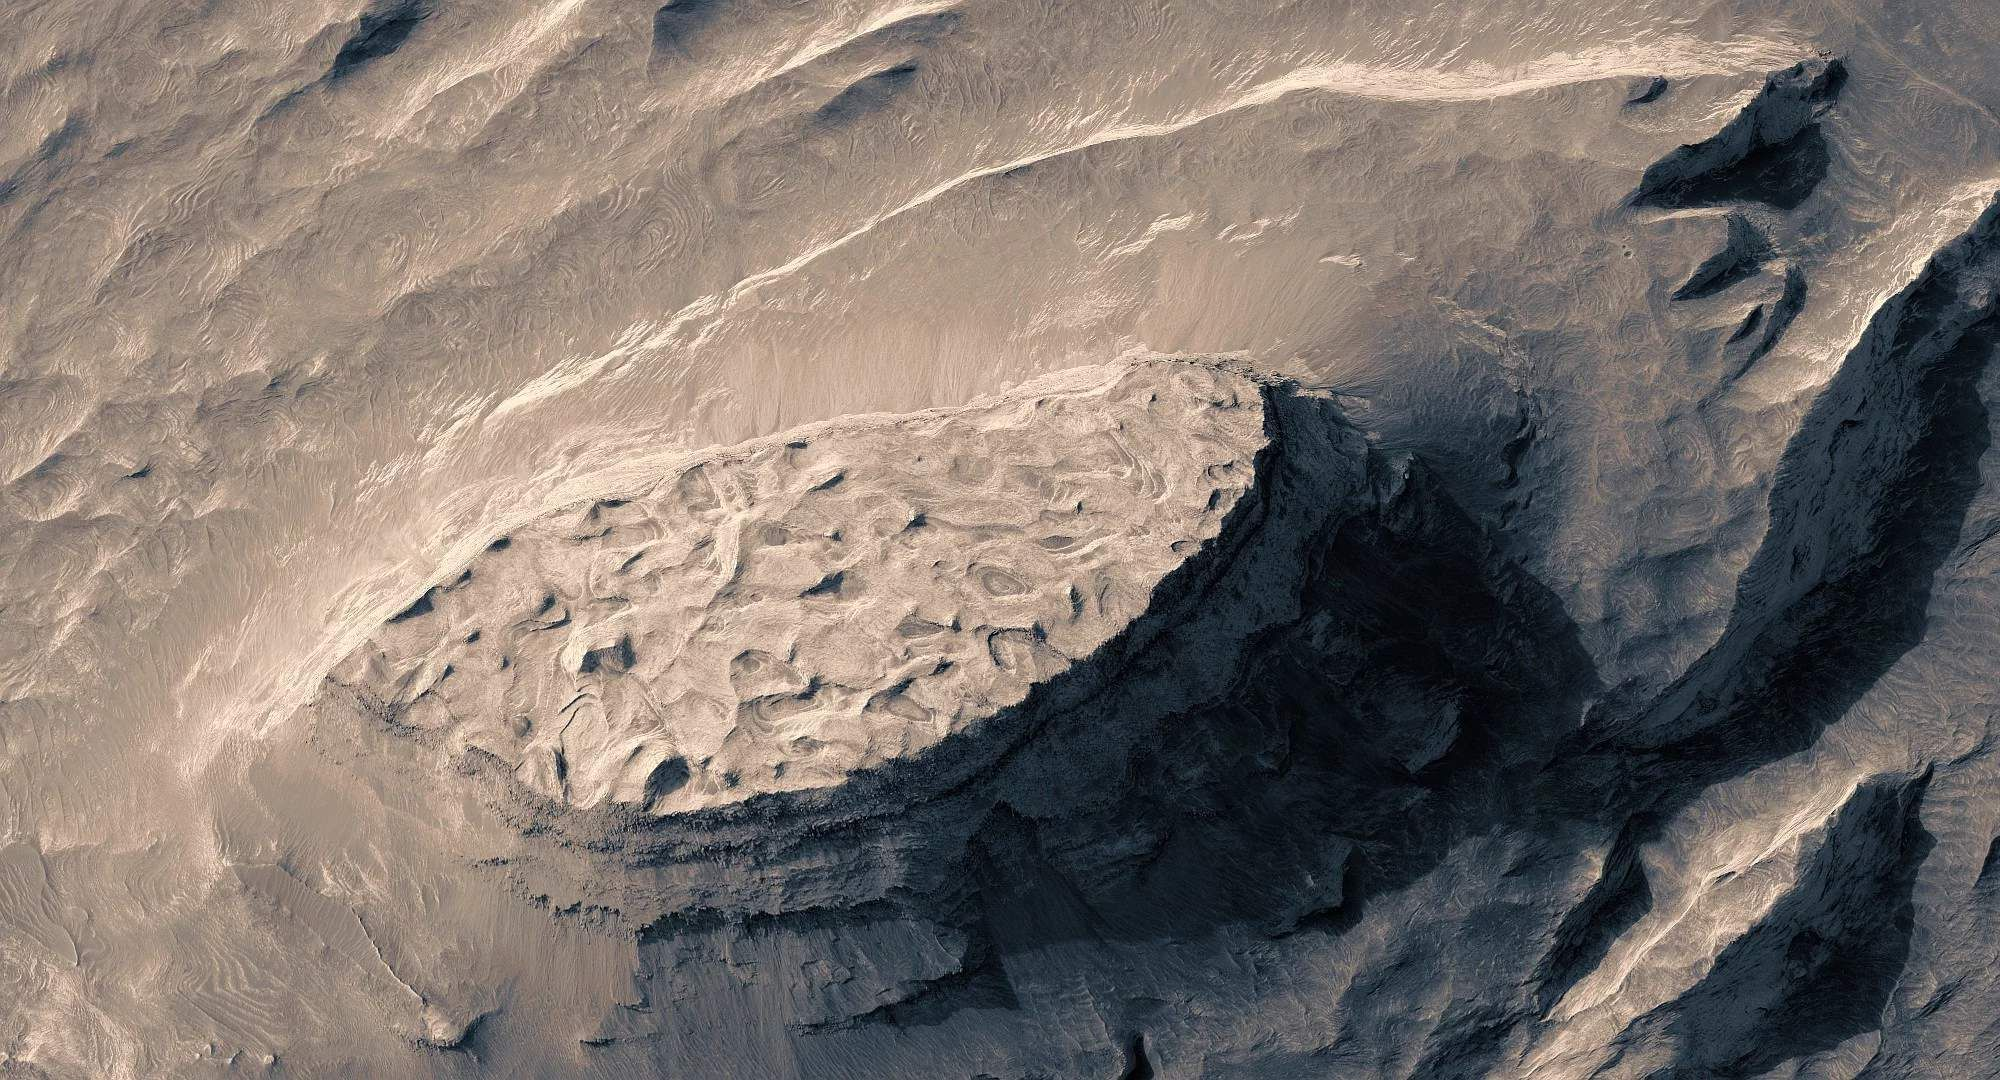 This 3D Video of Mars Feels Trippy and Surreal Mars